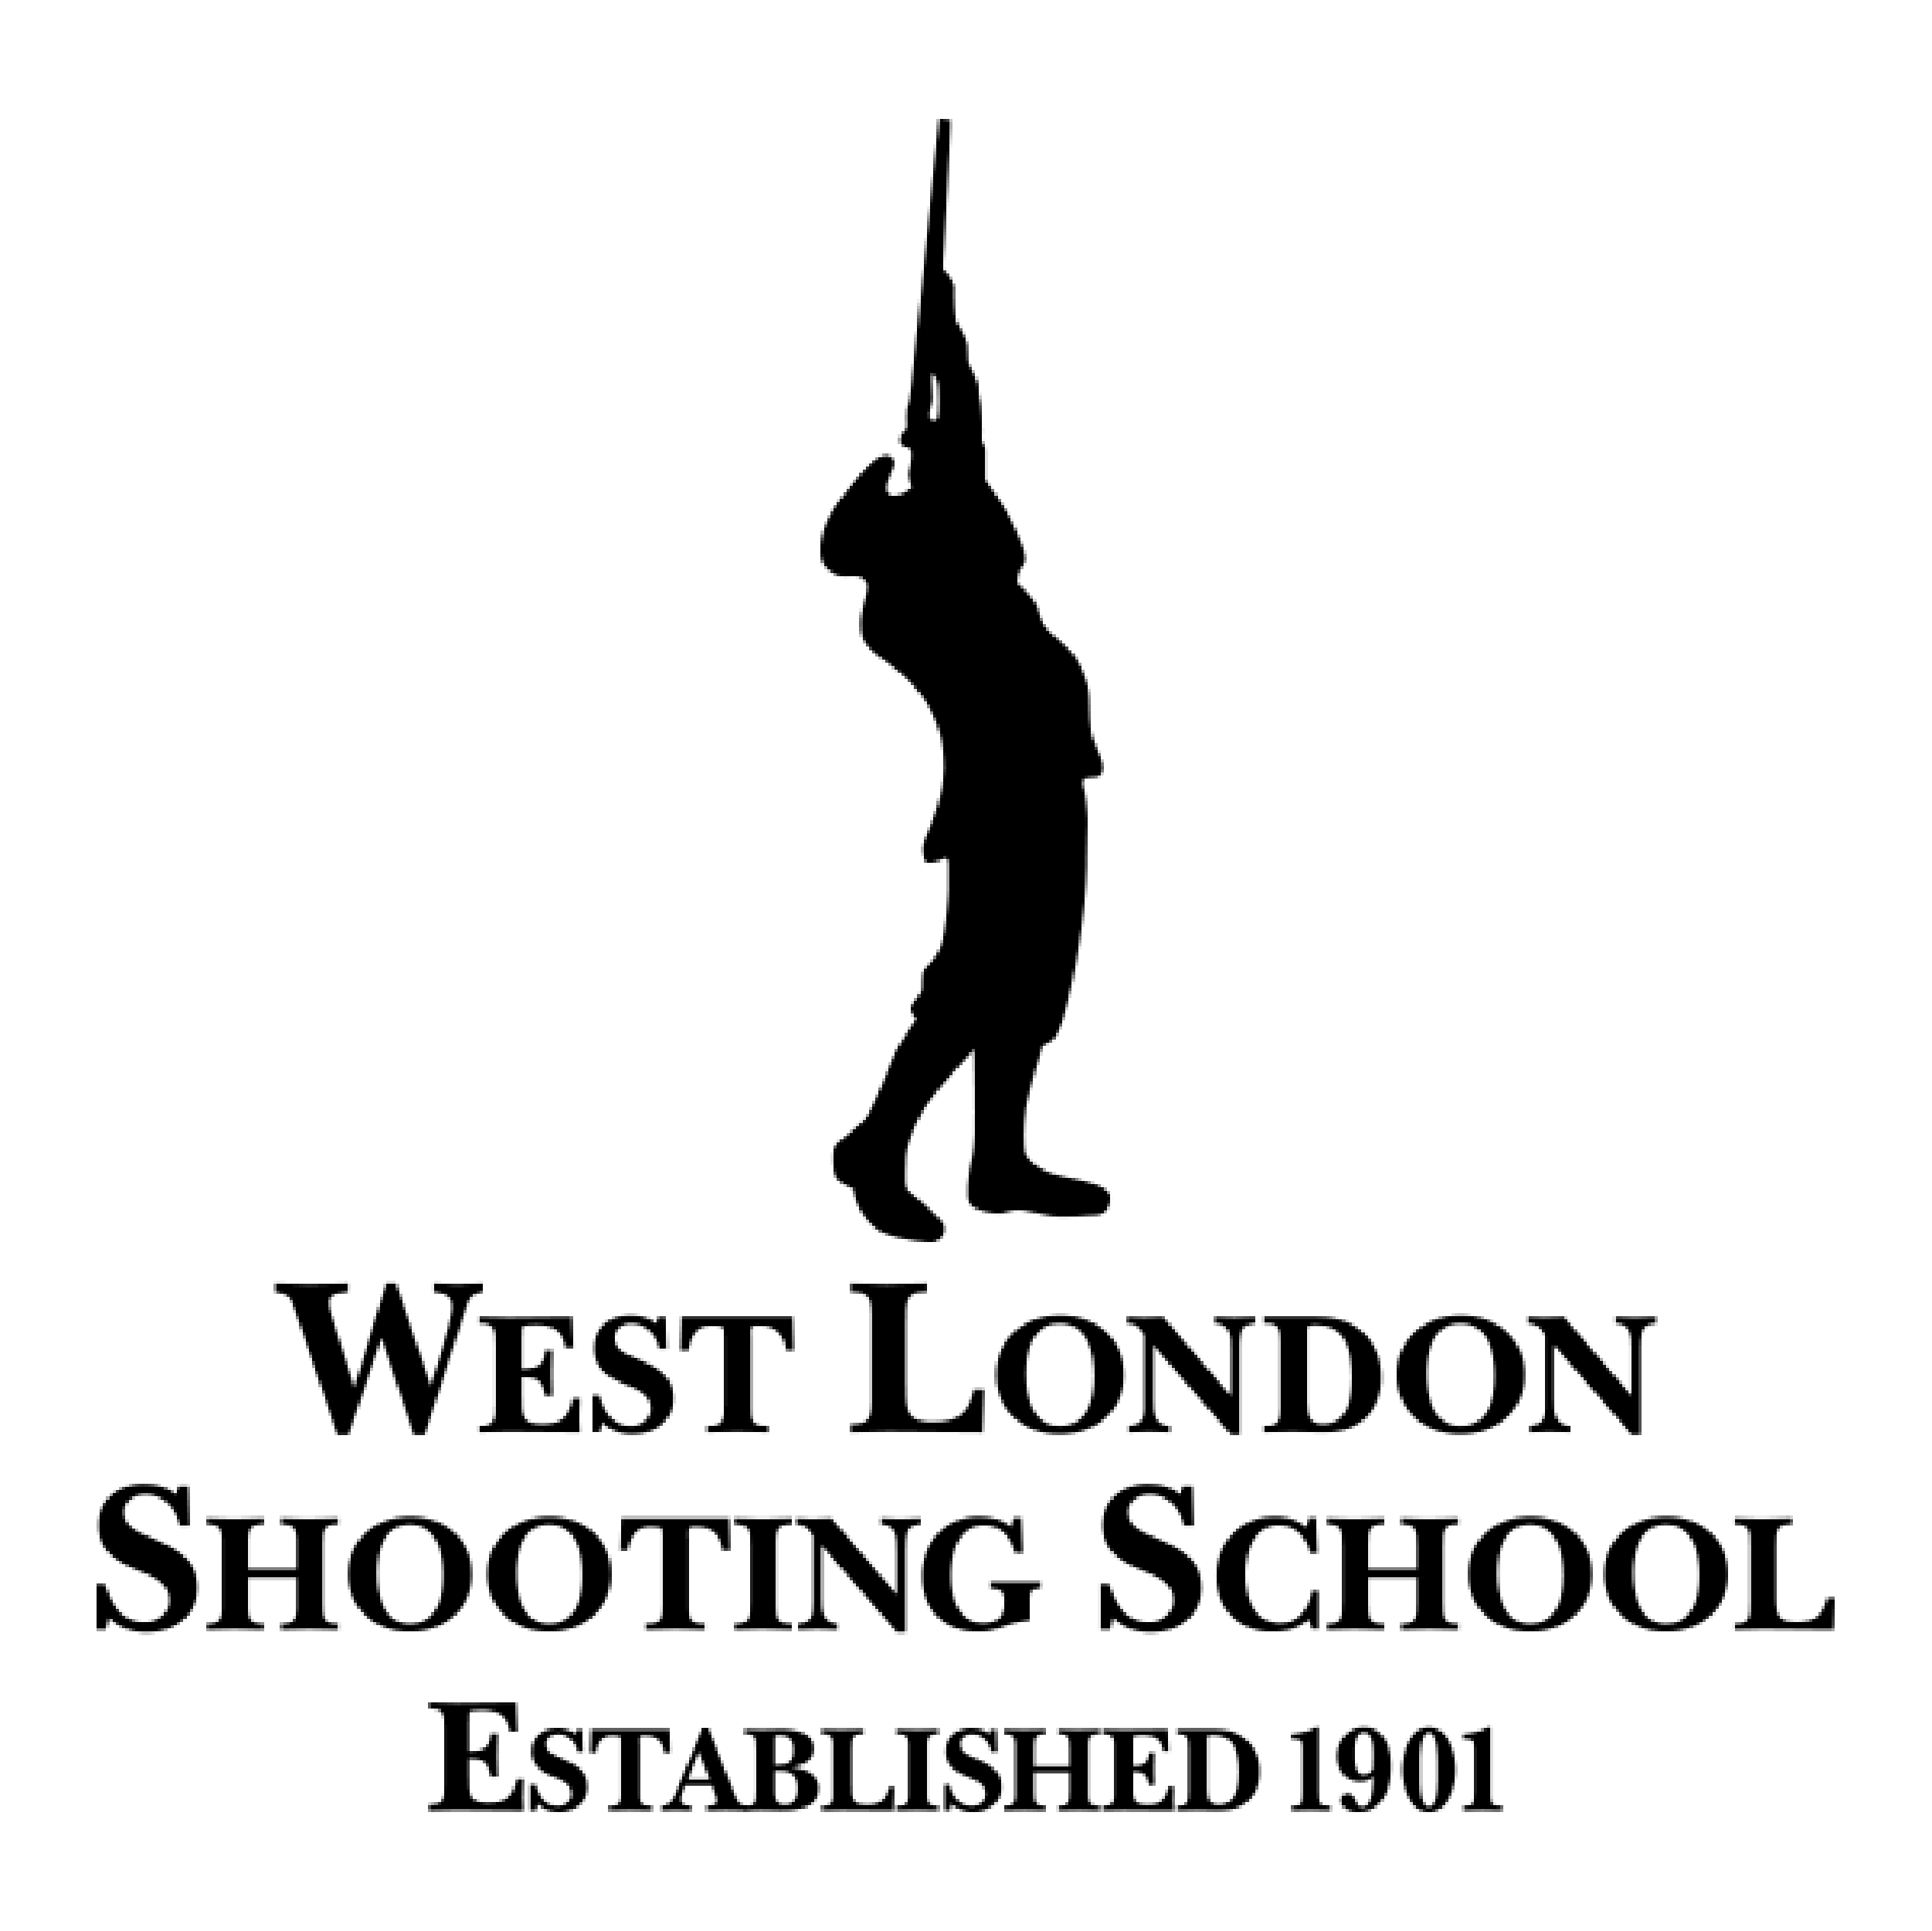 Sportarm at West London Shooting School